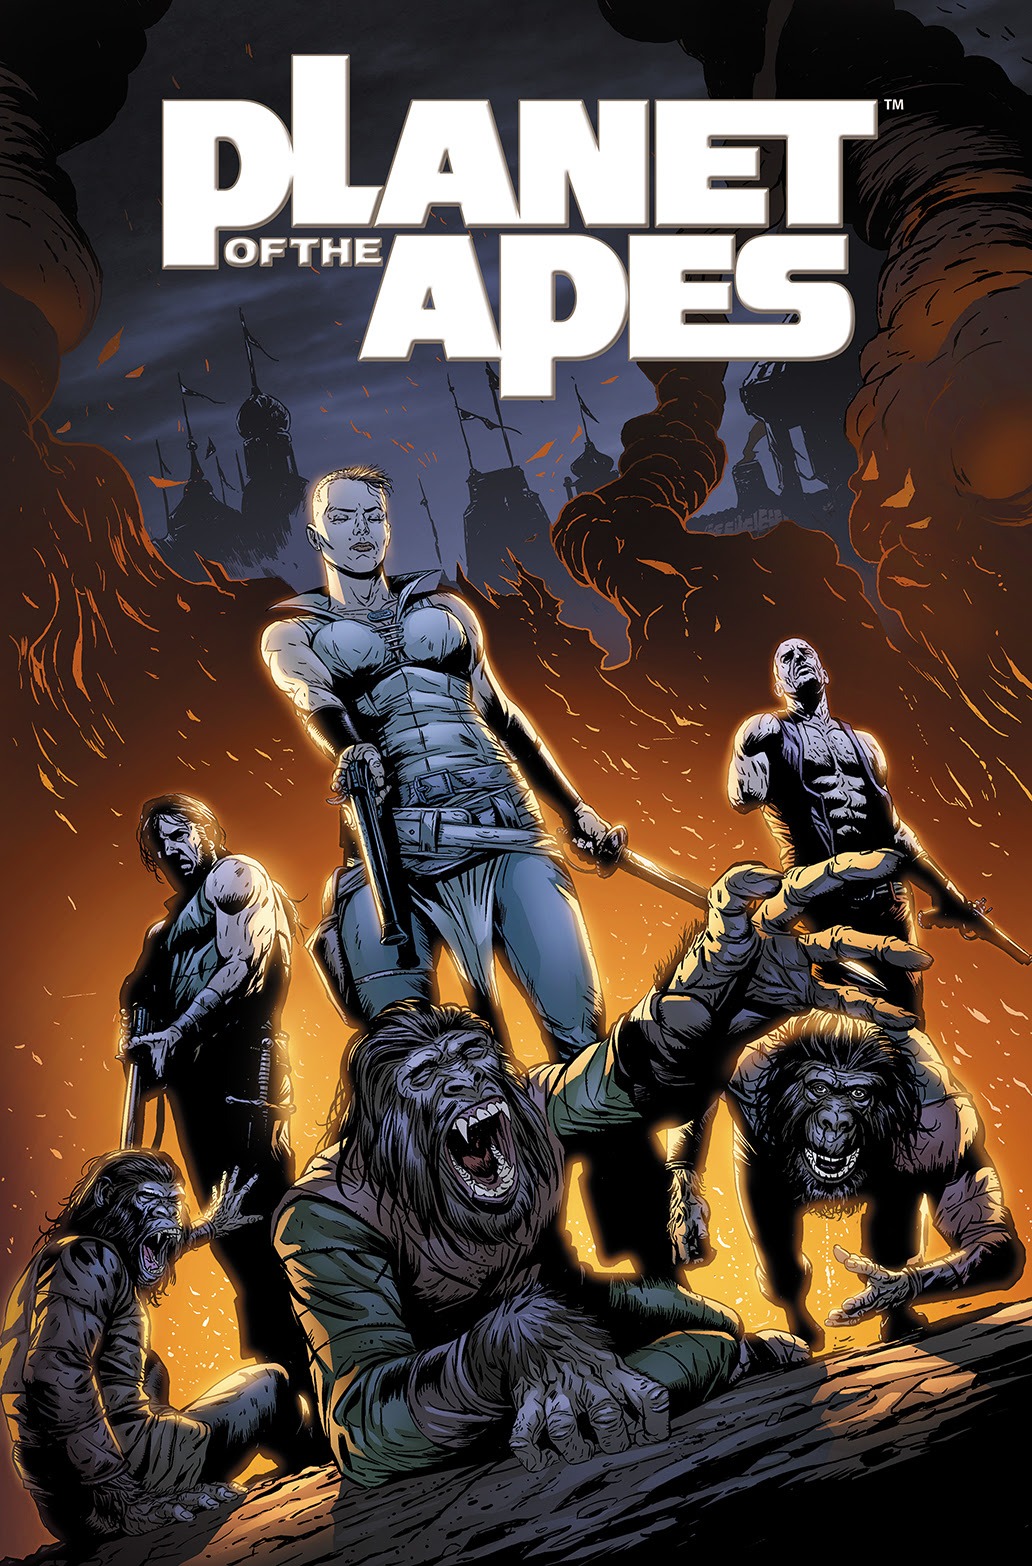 PLANET OF THE APES VOL. 5 TP Cover by Marek Oleksicki